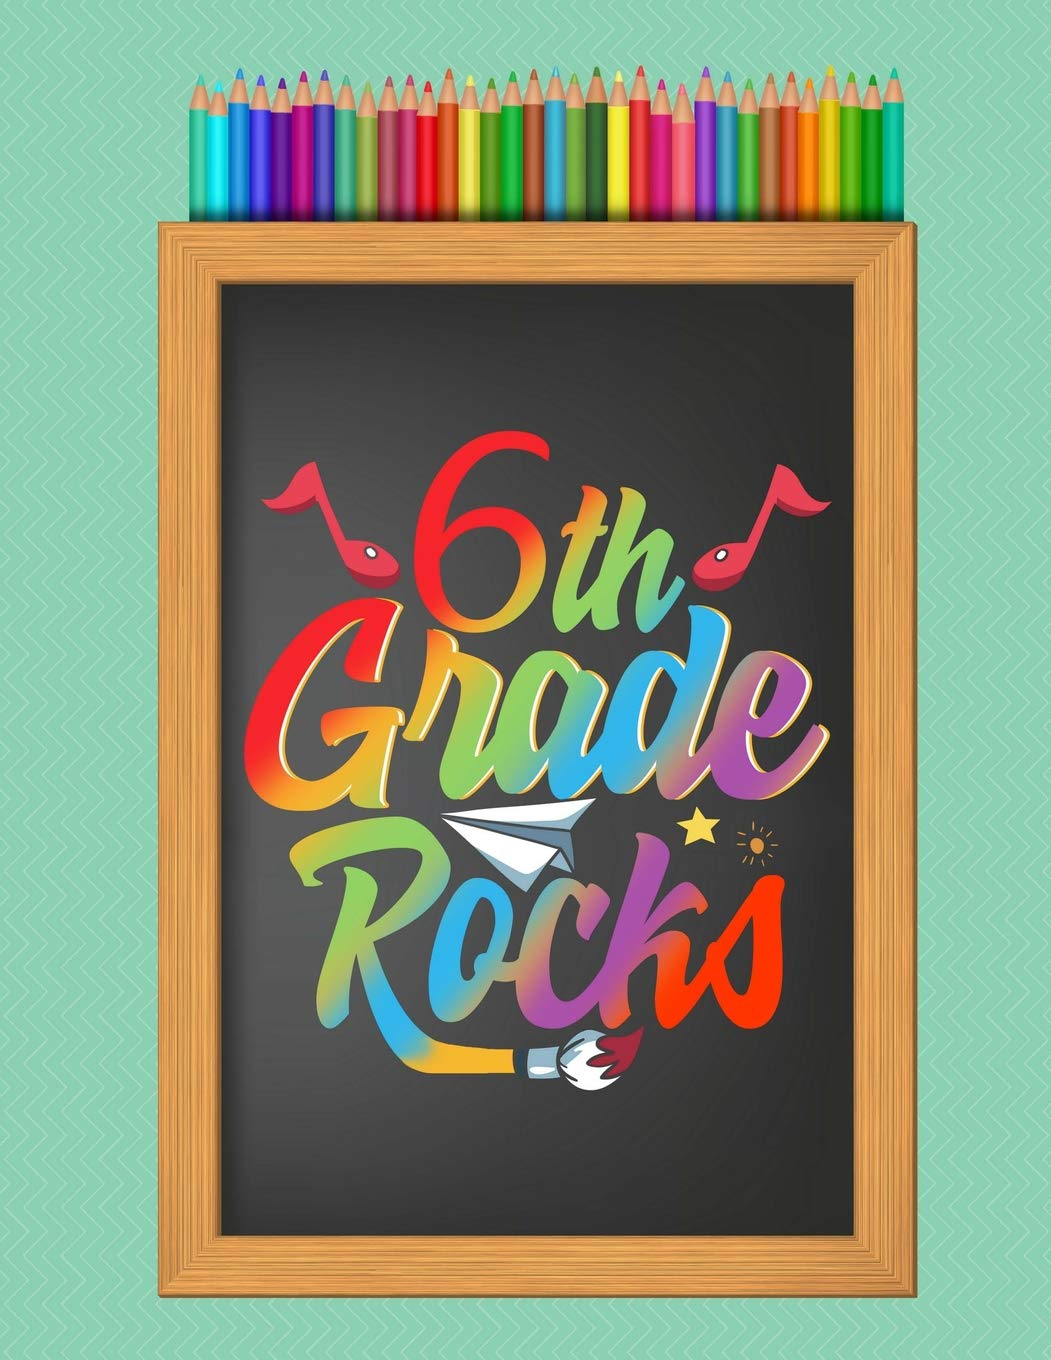 """6th Sixth Grade Rocks School Notebook: Writing Journal, Wide Ruled Lined Paper, Elementary School Teachers Students, 200 Lined Pages (8.5"""" x 11"""") pdf"""